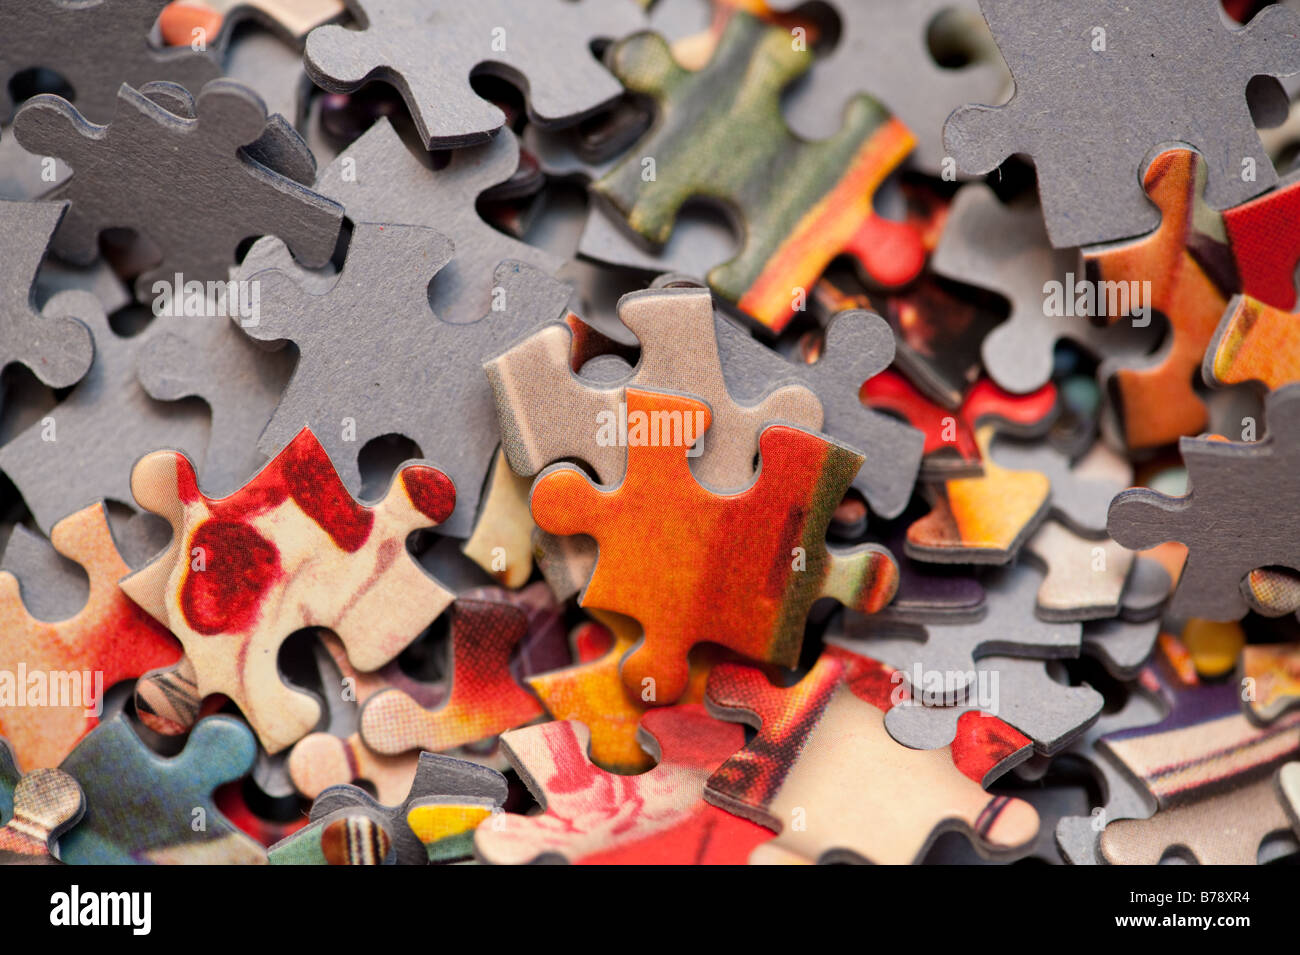 A jumble of jigsaw piece pieces - Stock Image